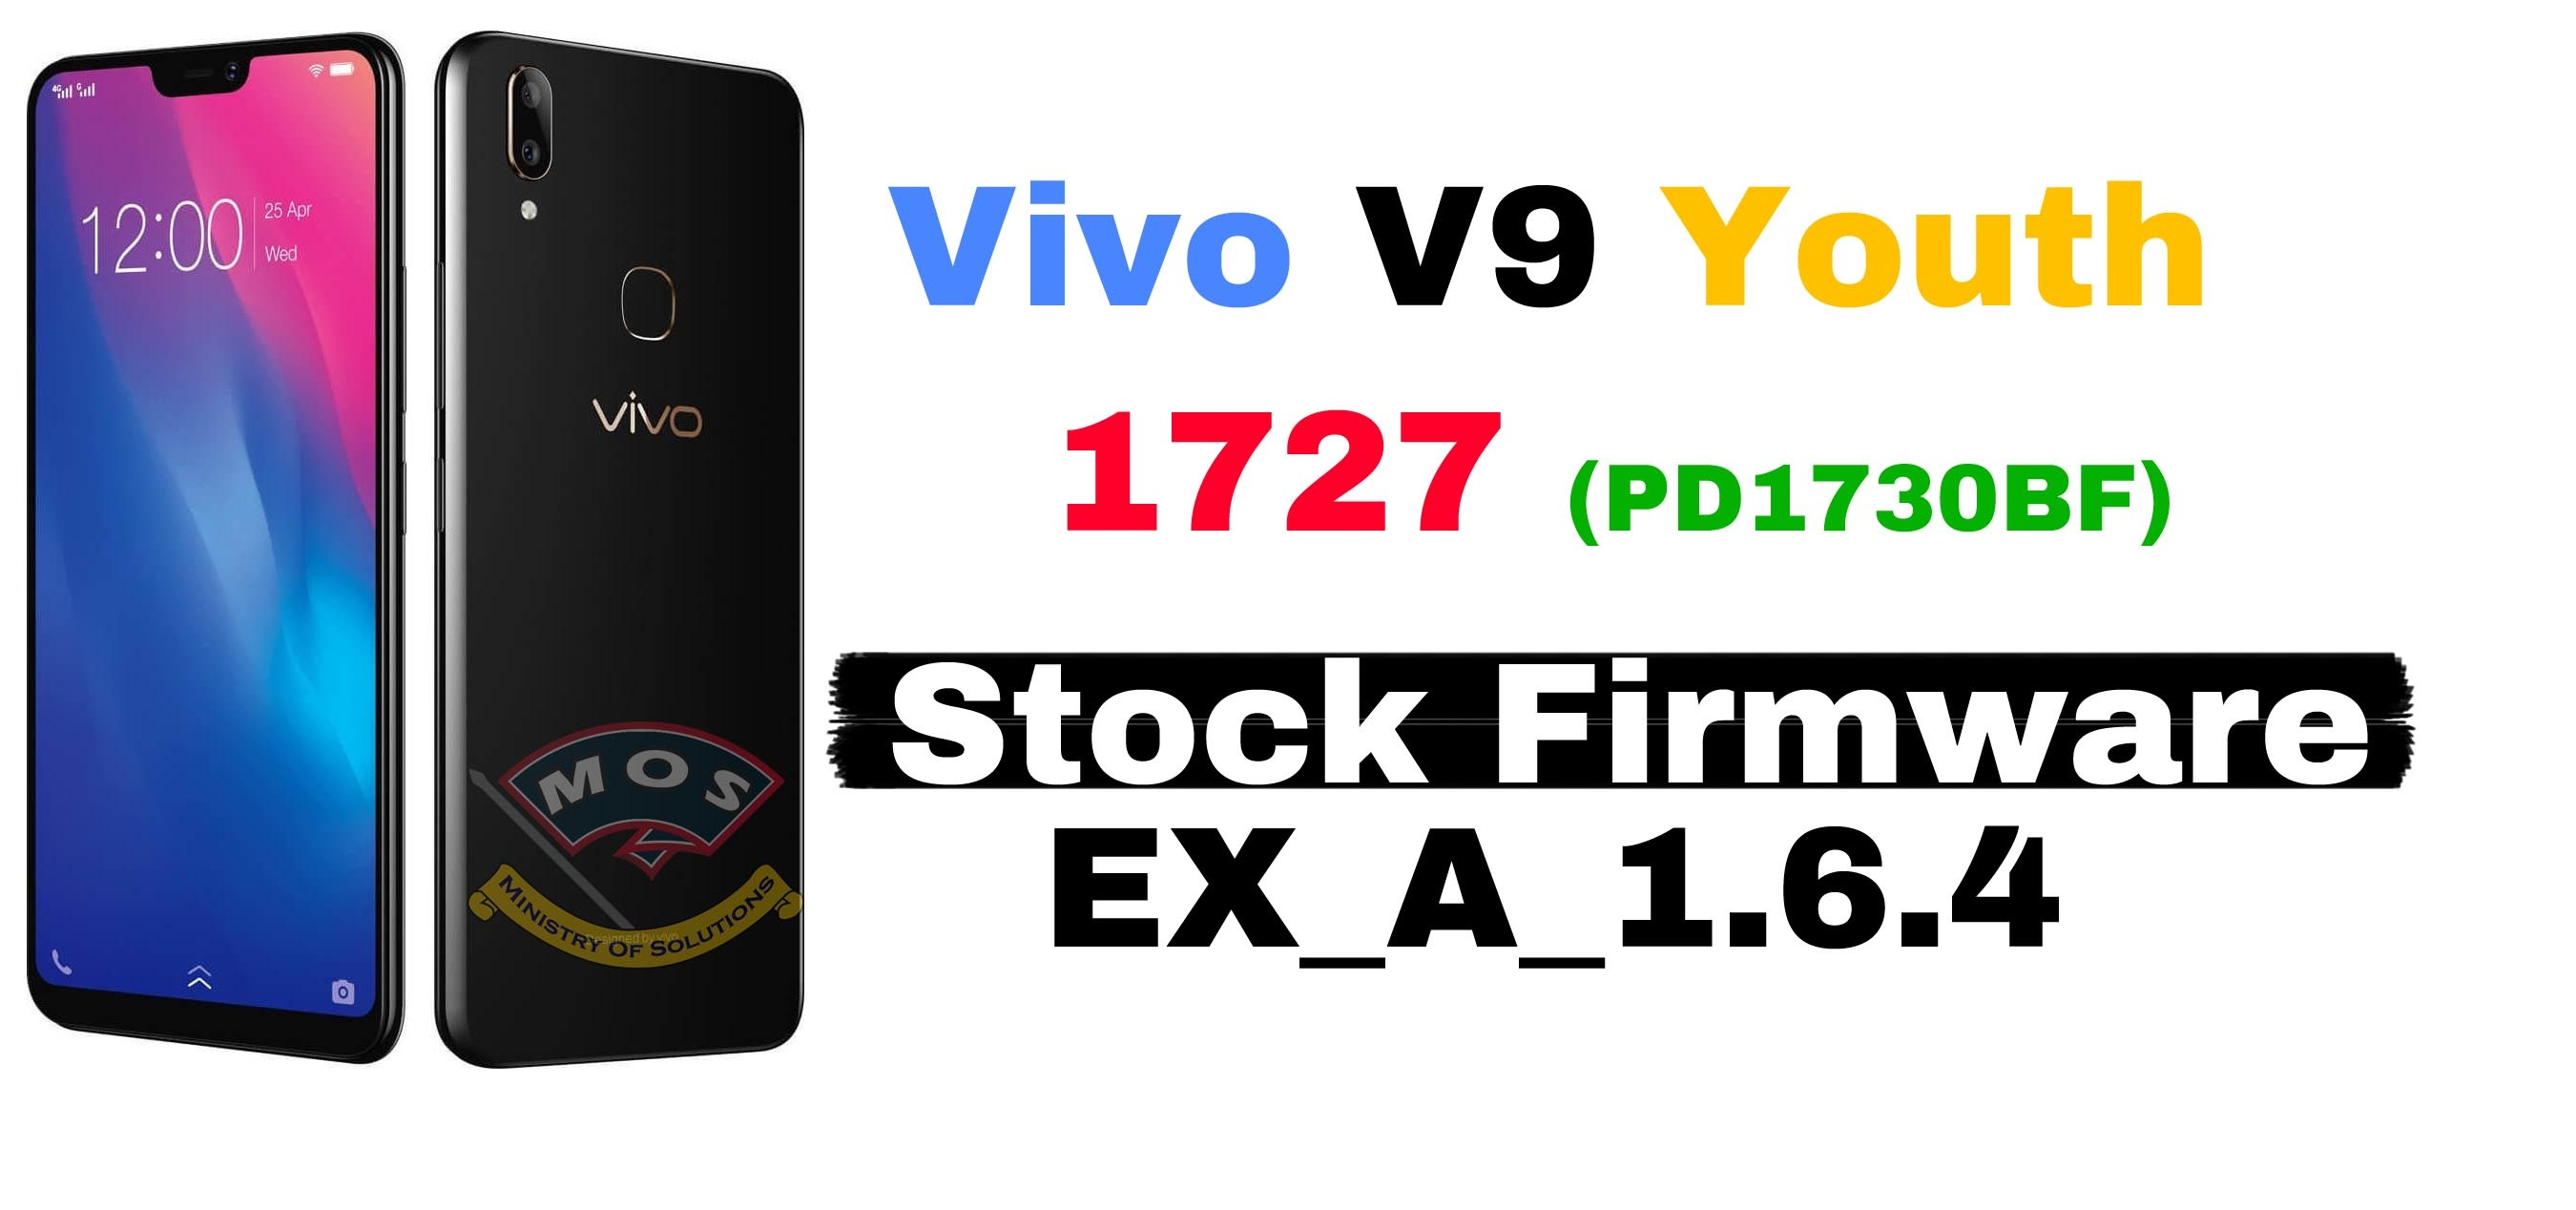 Vivo Y9 Youth 1727 (PD1730BF) Latest Firmware EX_A_1 6 4